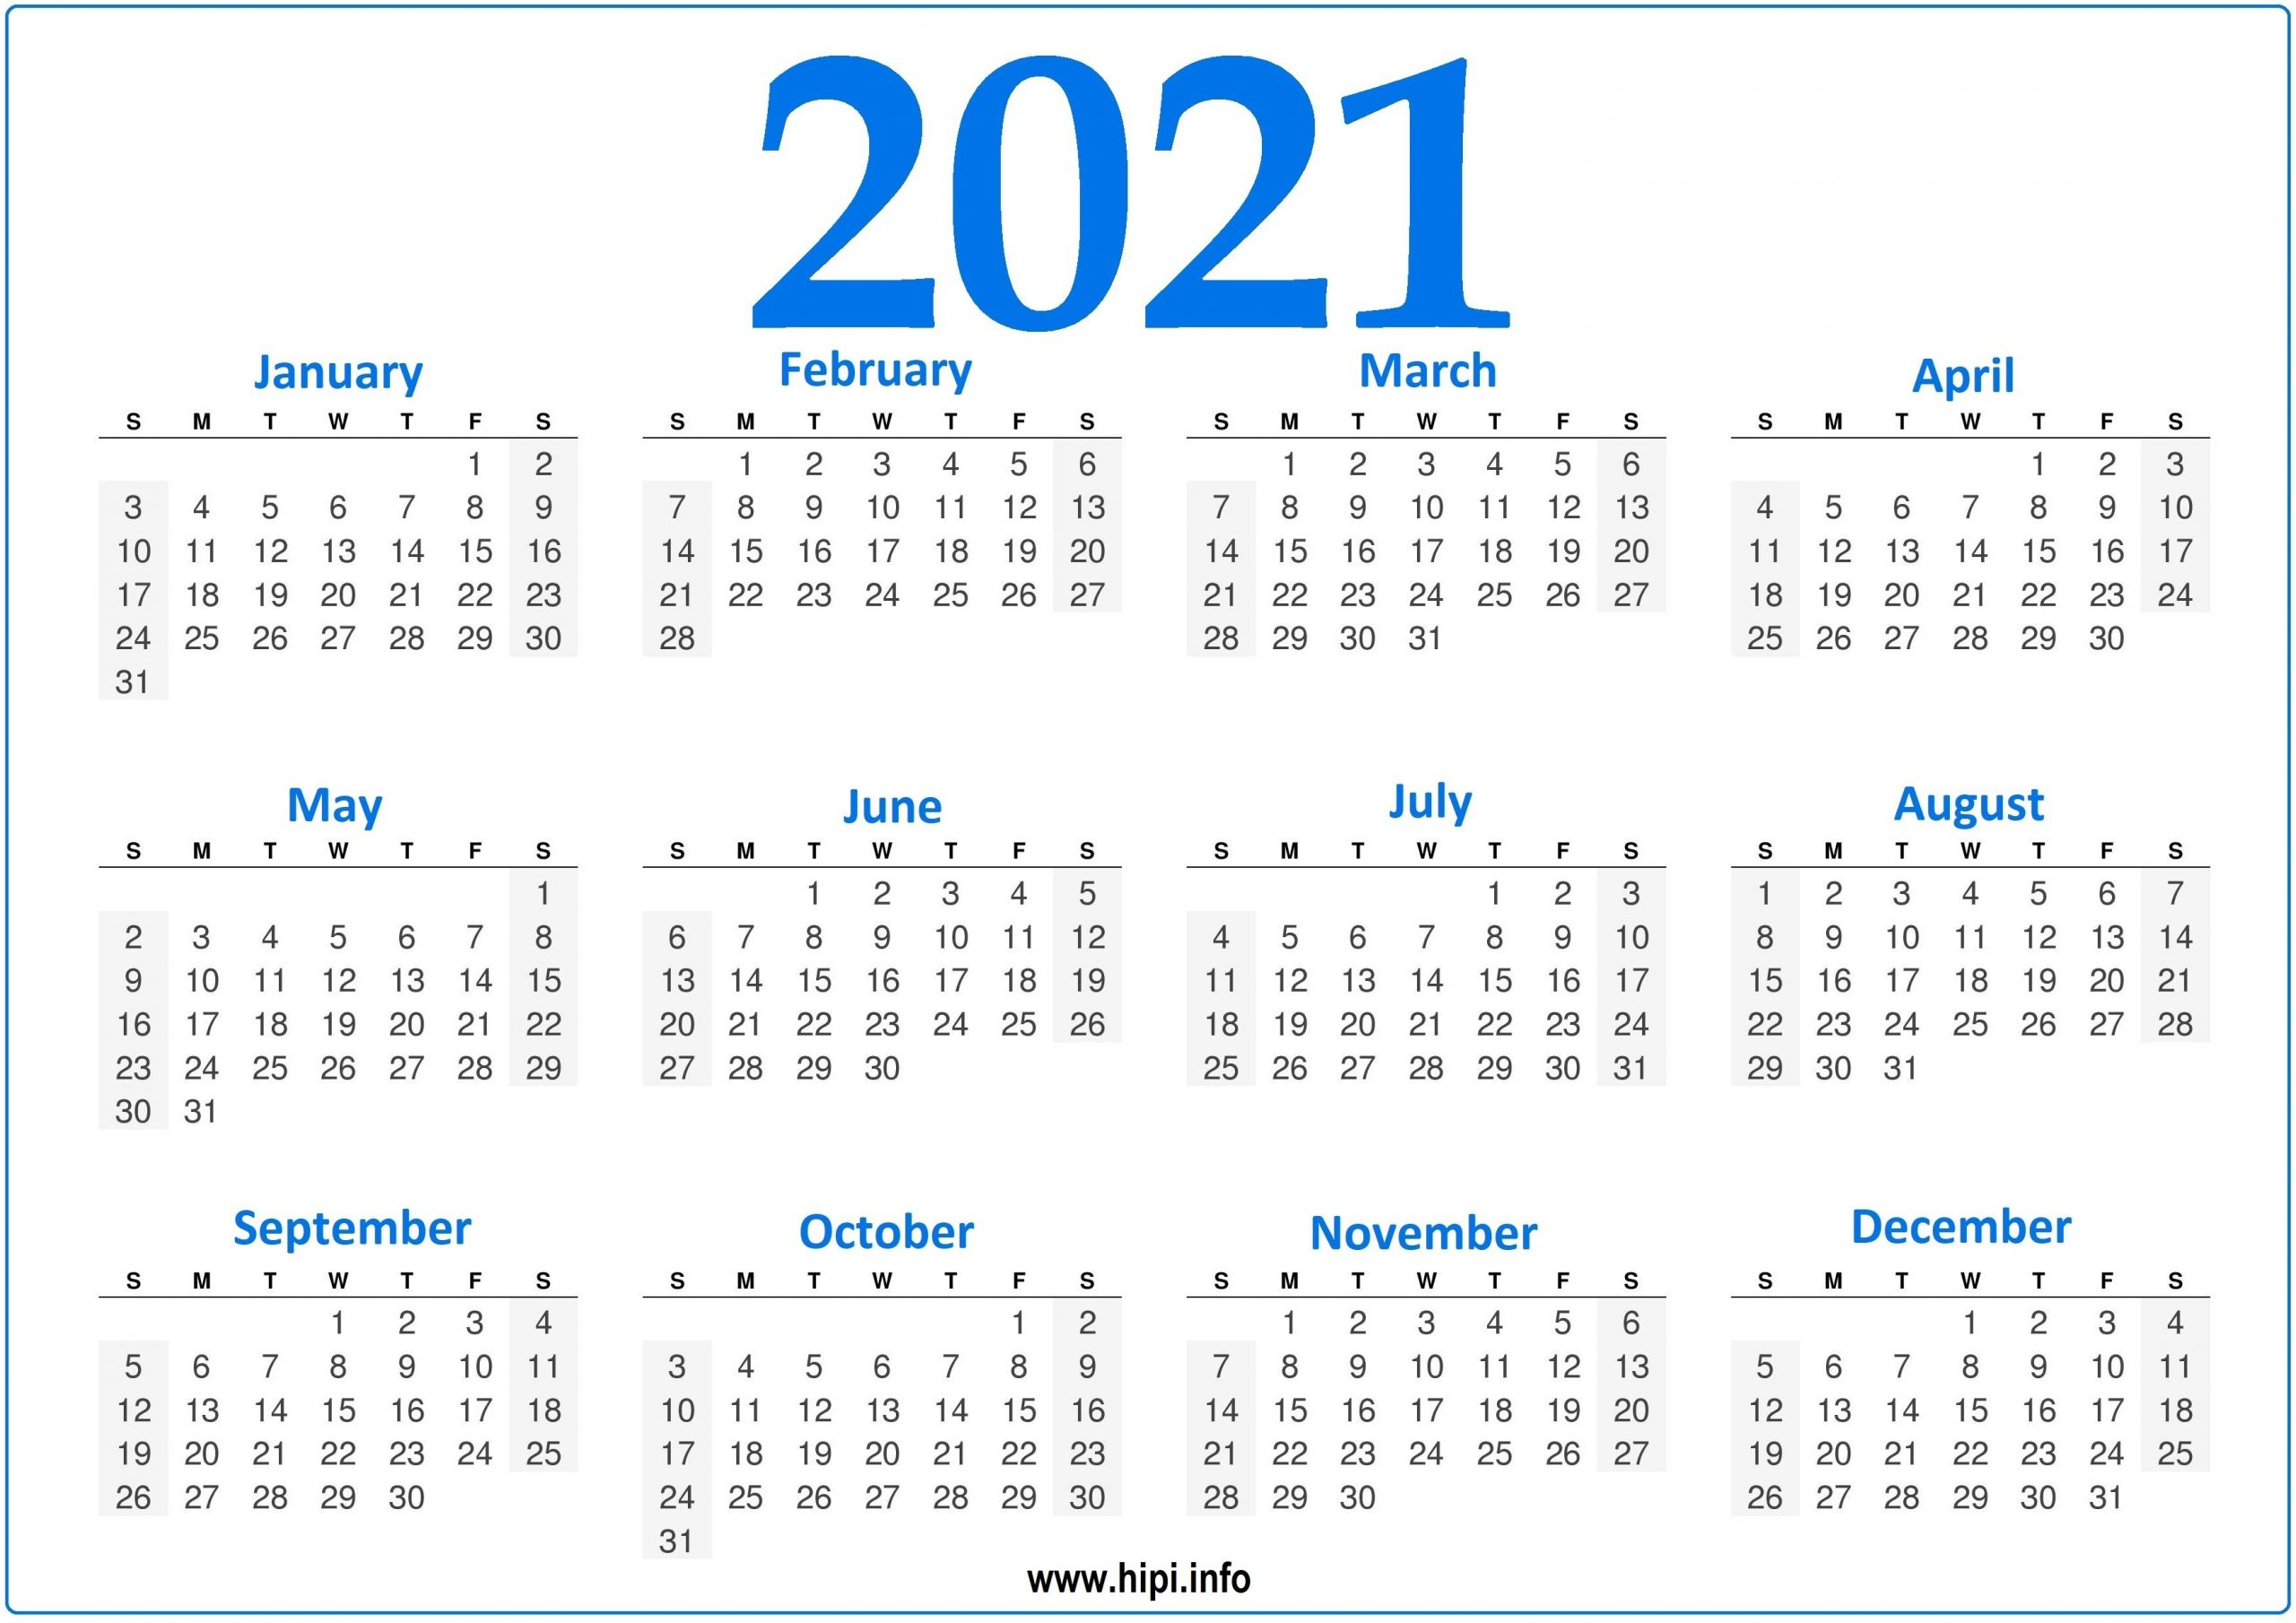 2021 Calendar Editable Free - Free Fully Editable 2021 Calendar Template In Word : Download And for Free Printable Calendarlabs 2021